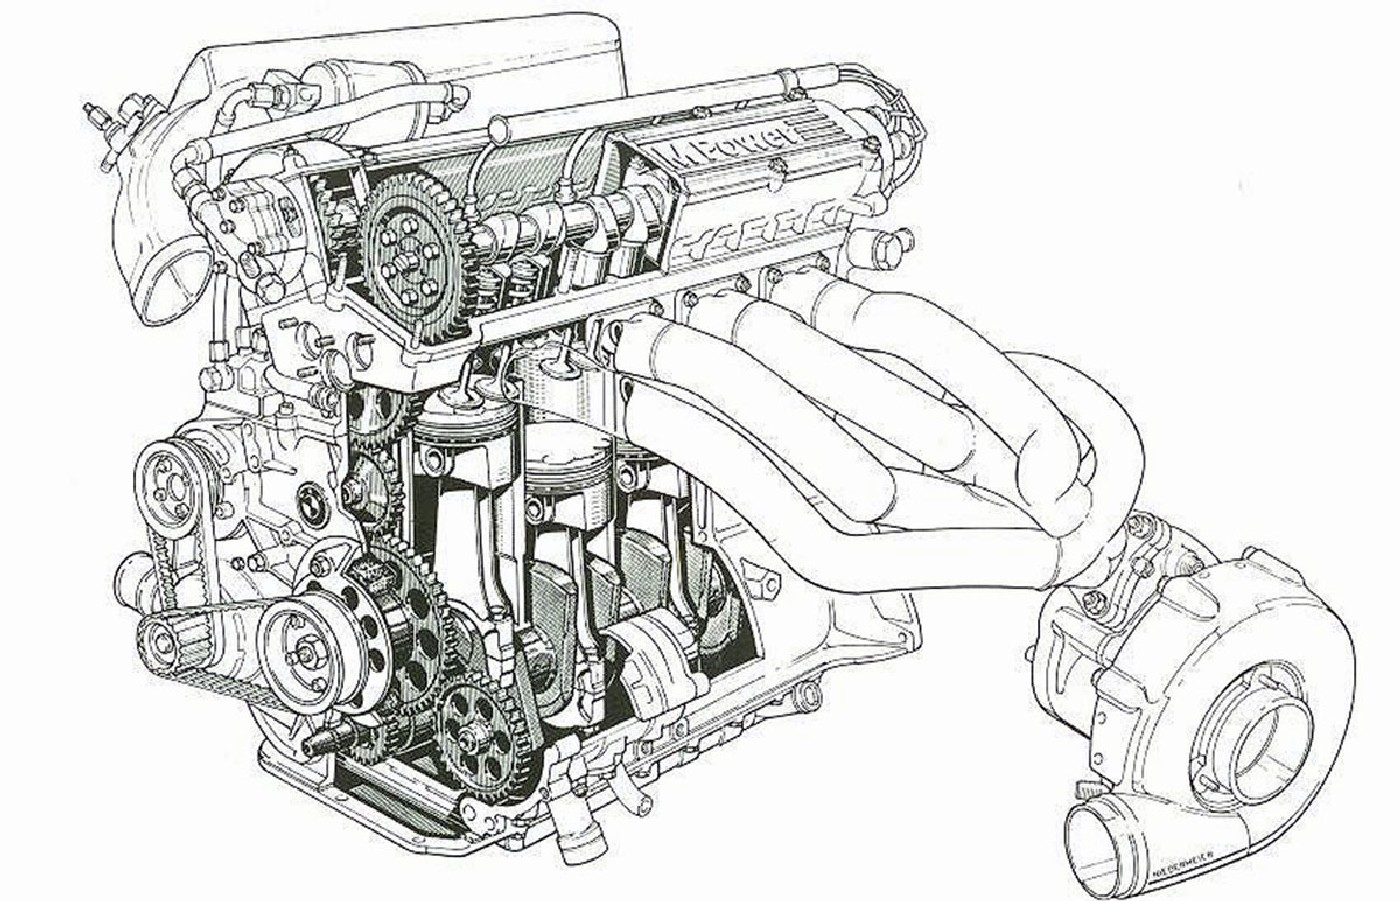 The M10: BMW's most successful engine.